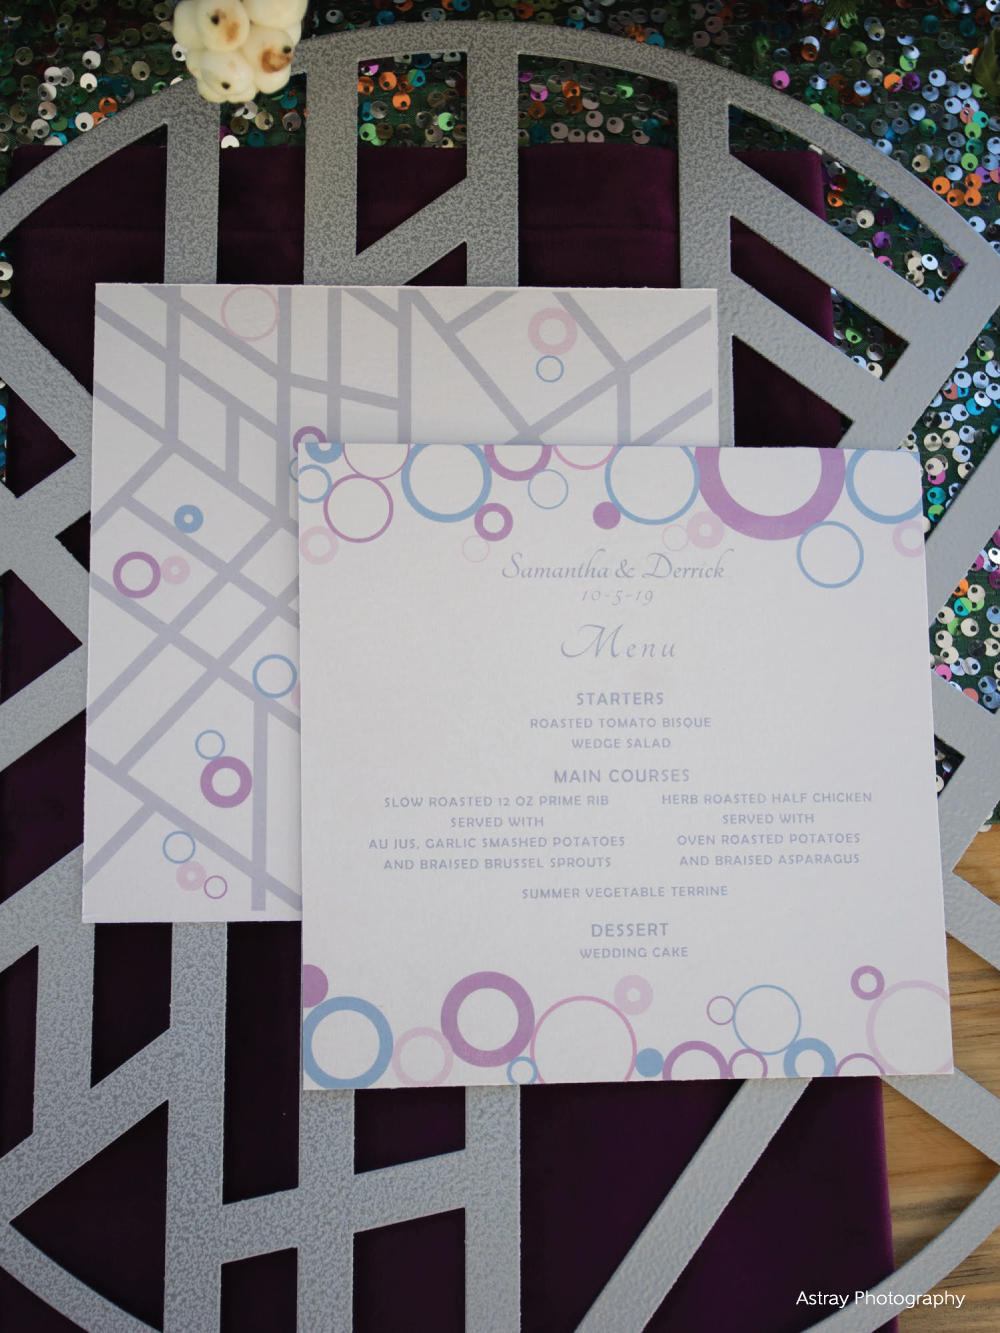 Front & back view of mid century modern invitation in blue, lavender & silver